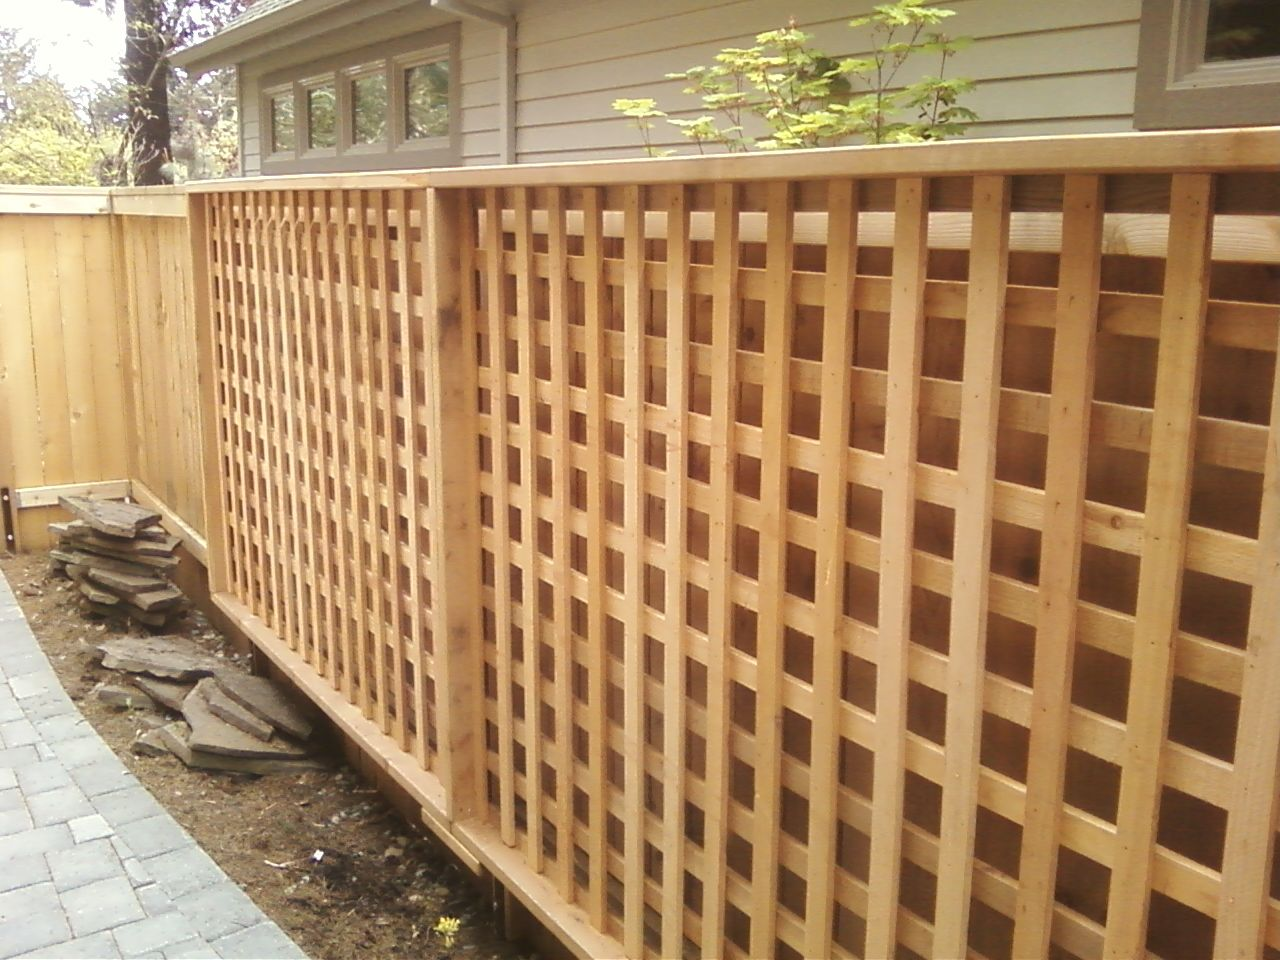 Wood Lattice Fence Panels Privacy Strangetowne Looks Sophisticated Wooden Fence Panels In 2020 Lattice Fence Panels Lattice Fence Trellis Fence Panels